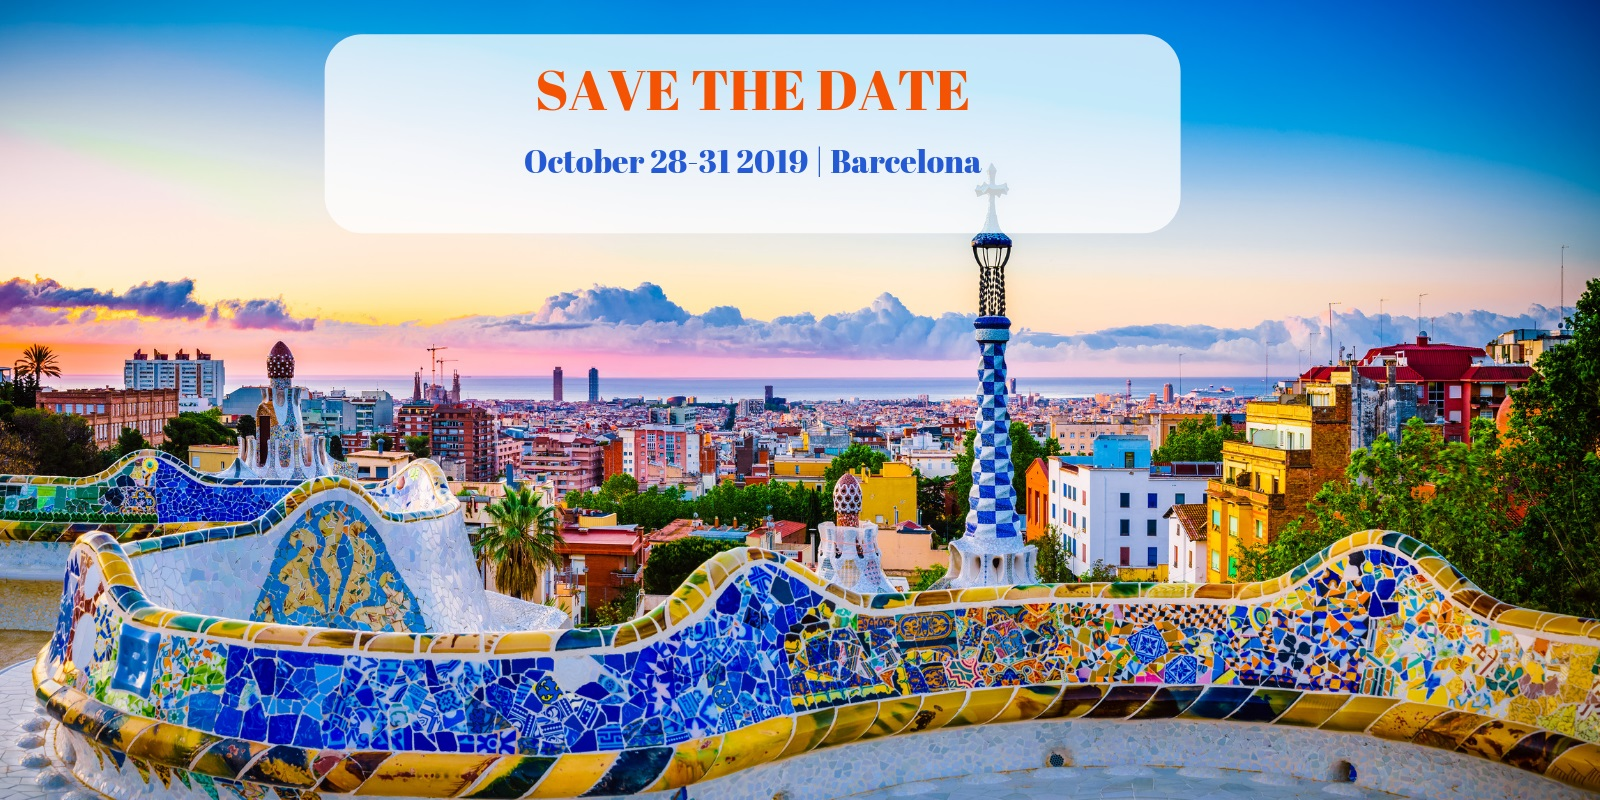 Save the date Barcelona 28-31 October 2019